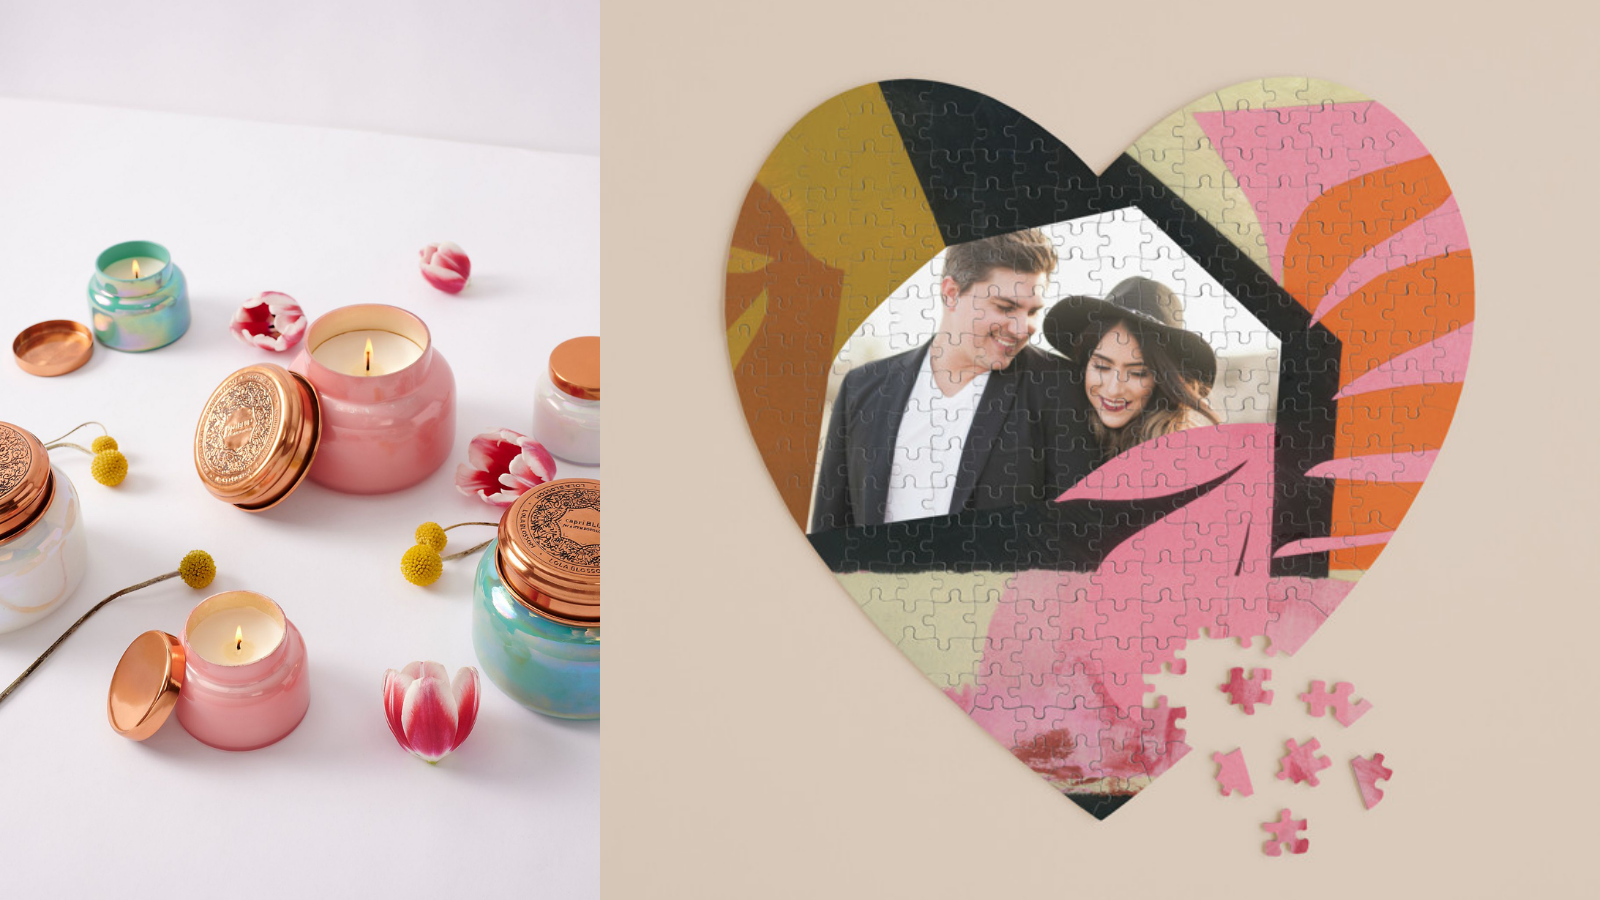 15 thoughtful Valentine's Day gifts women actually want